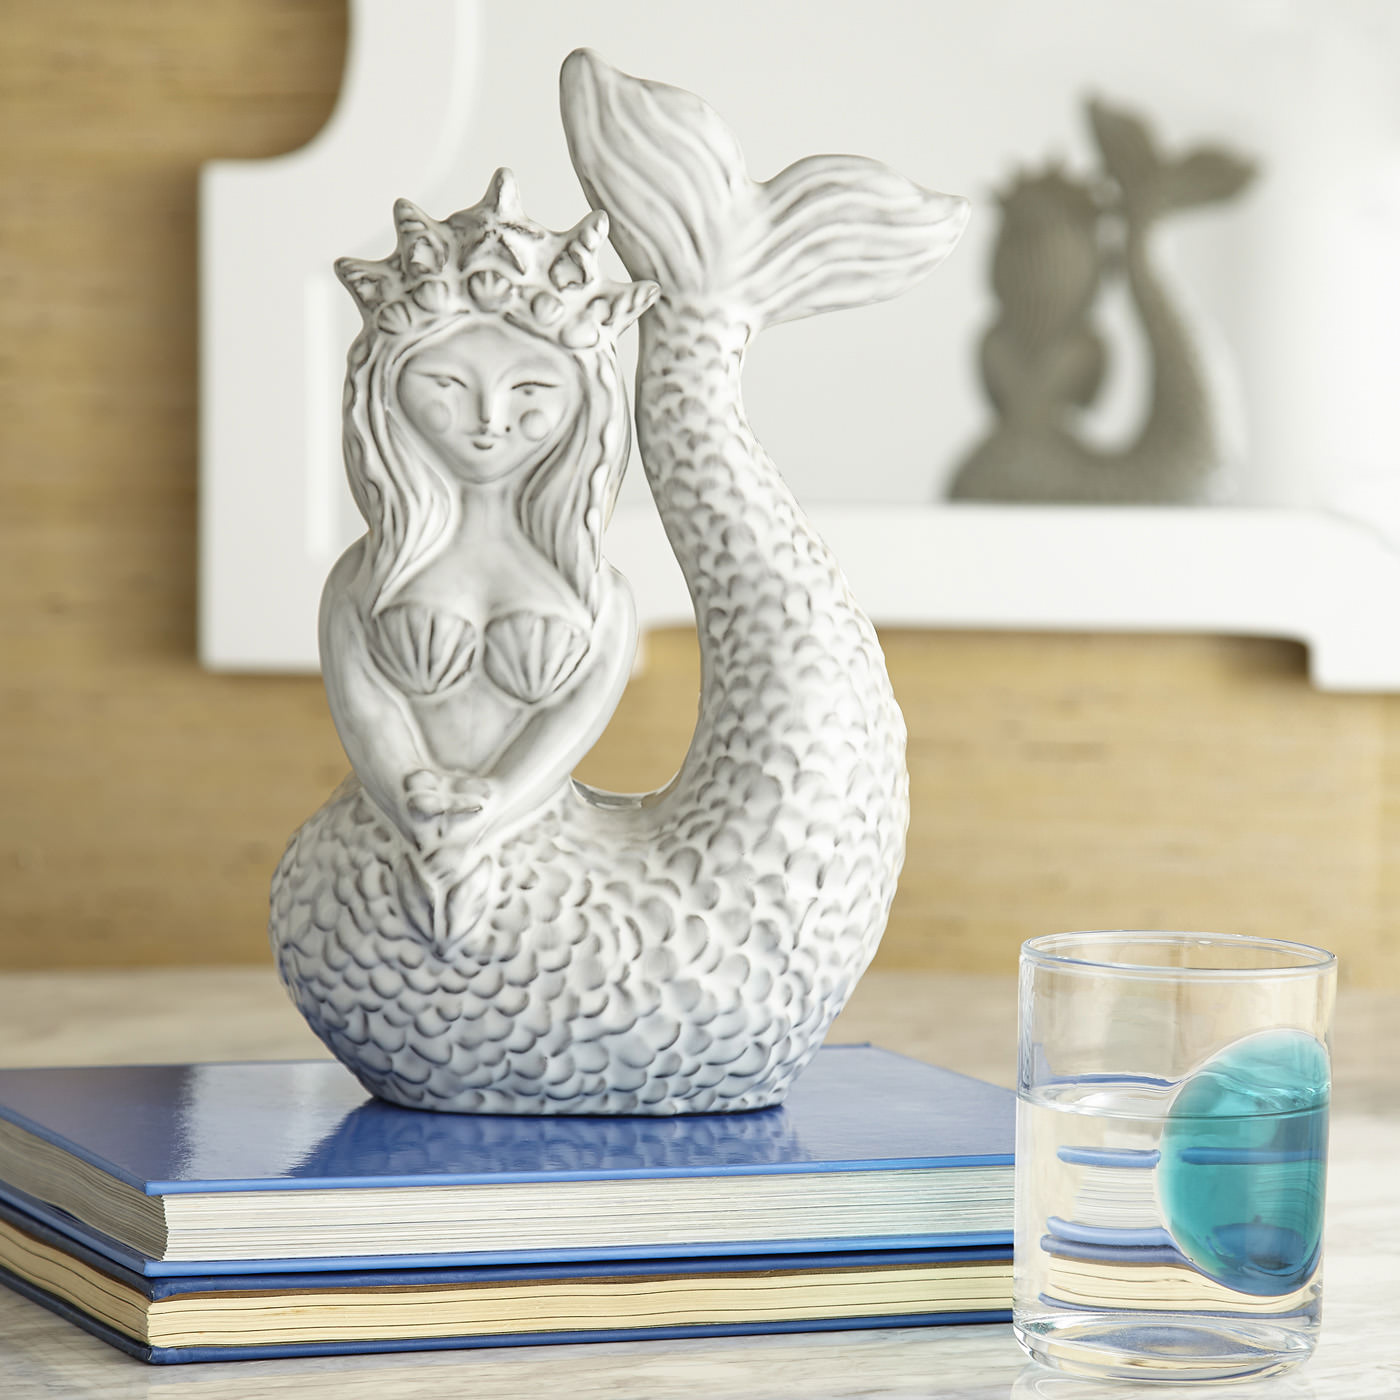 Mermaid And Unicorn Decor For Kids 39 Rooms And Beyond